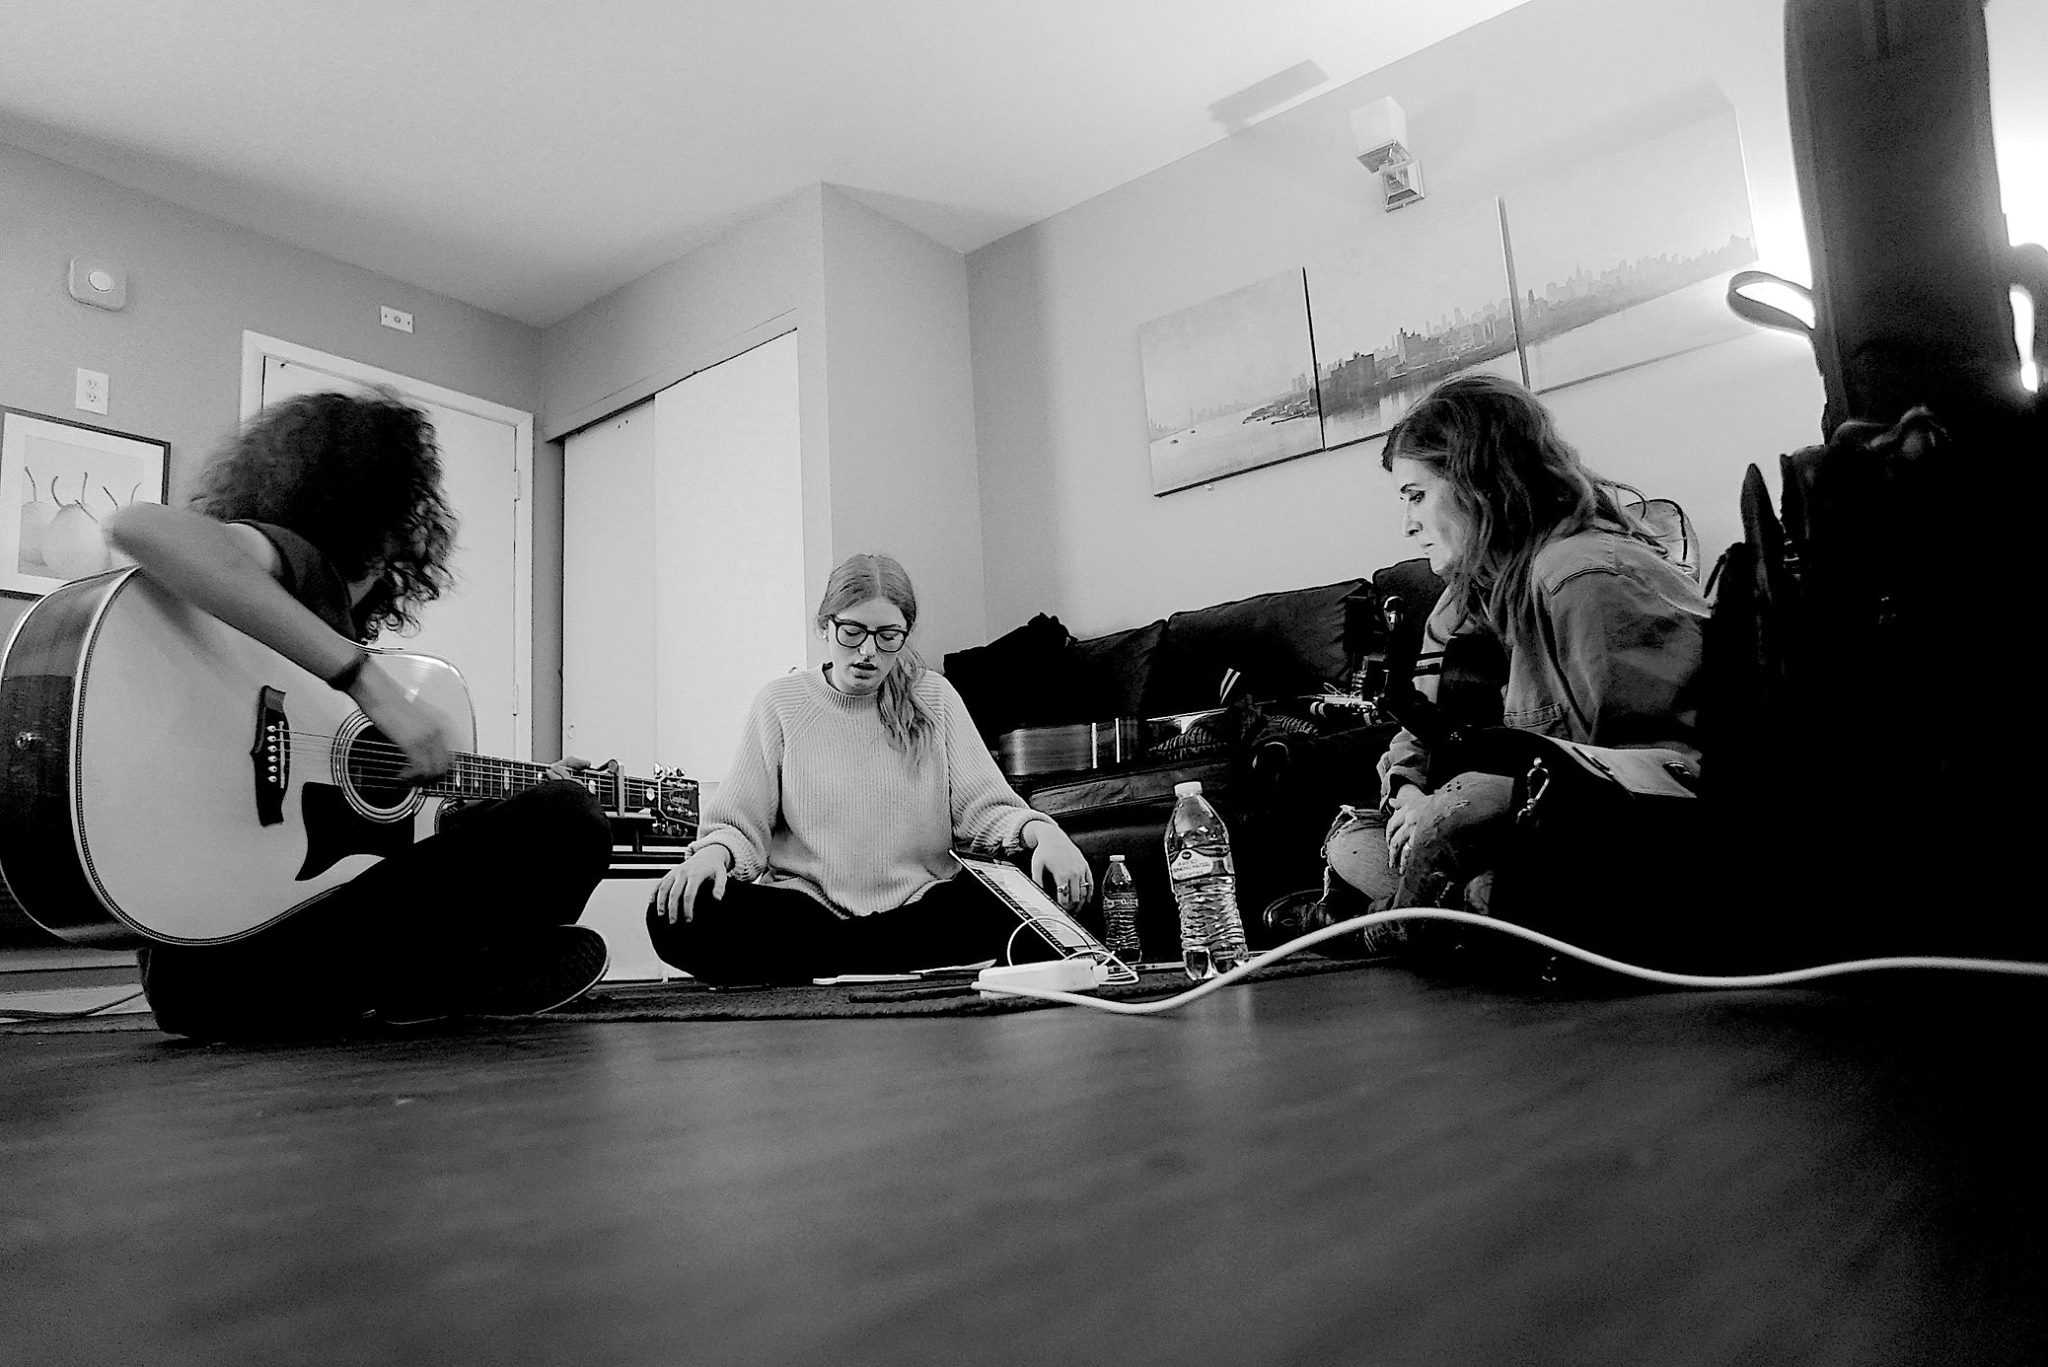 Josh King and MONIQUE songwriting with Diona Devincenz.